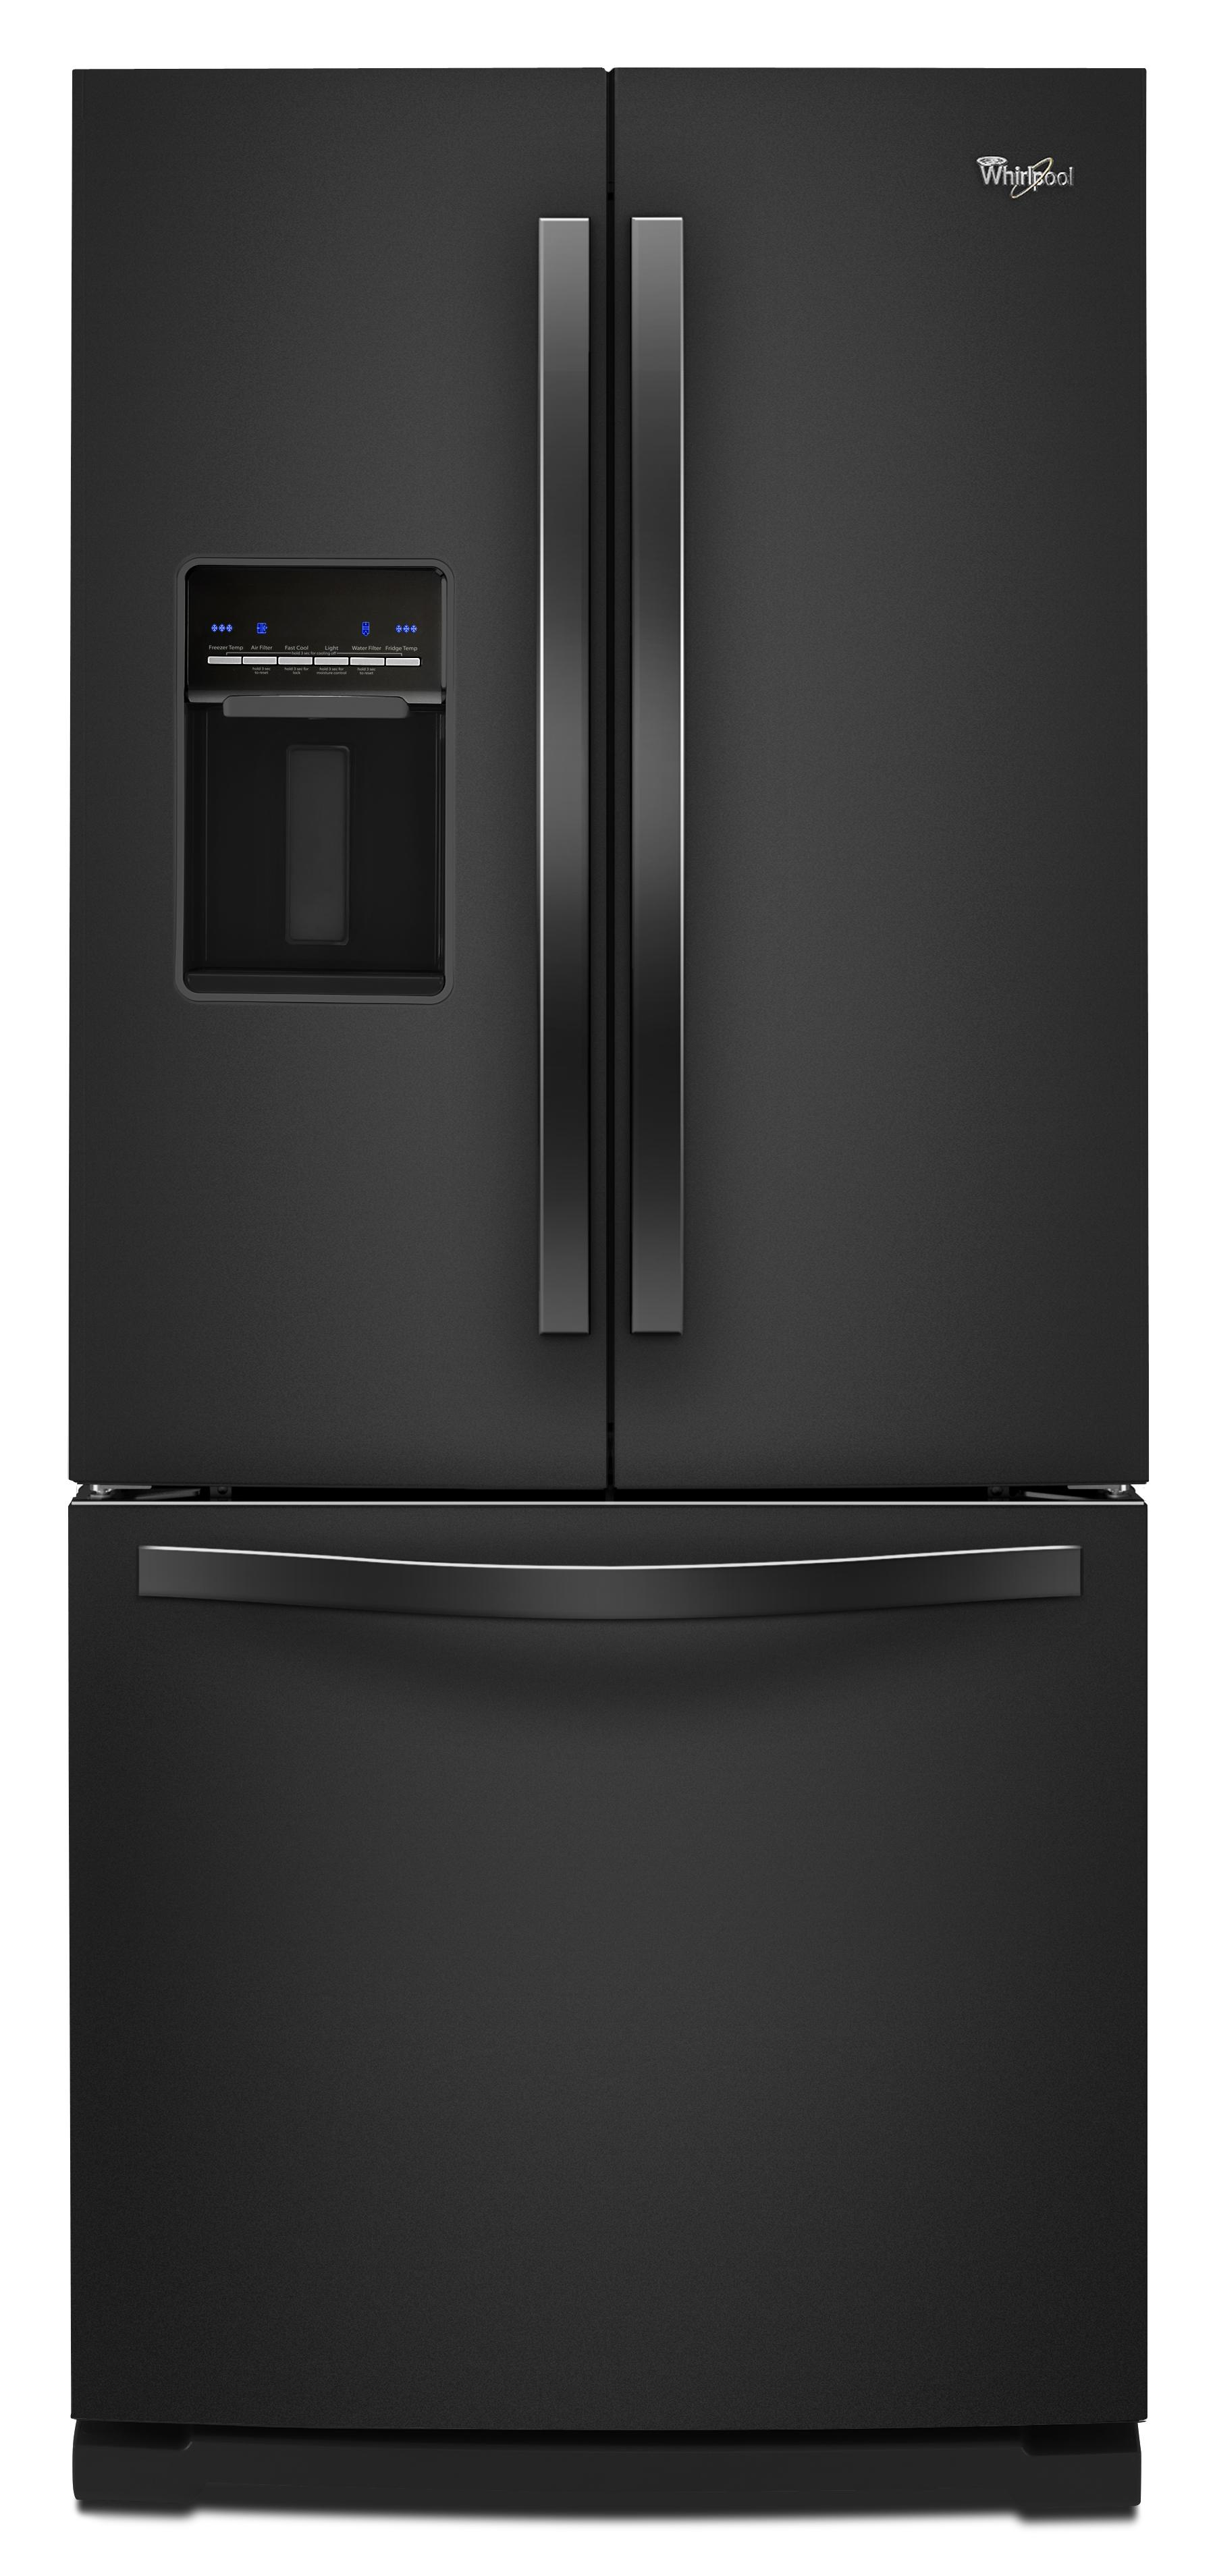 Whirlpool 19 6 cu ft french door refrigerator with for 19 6 cu ft french door refrigerator